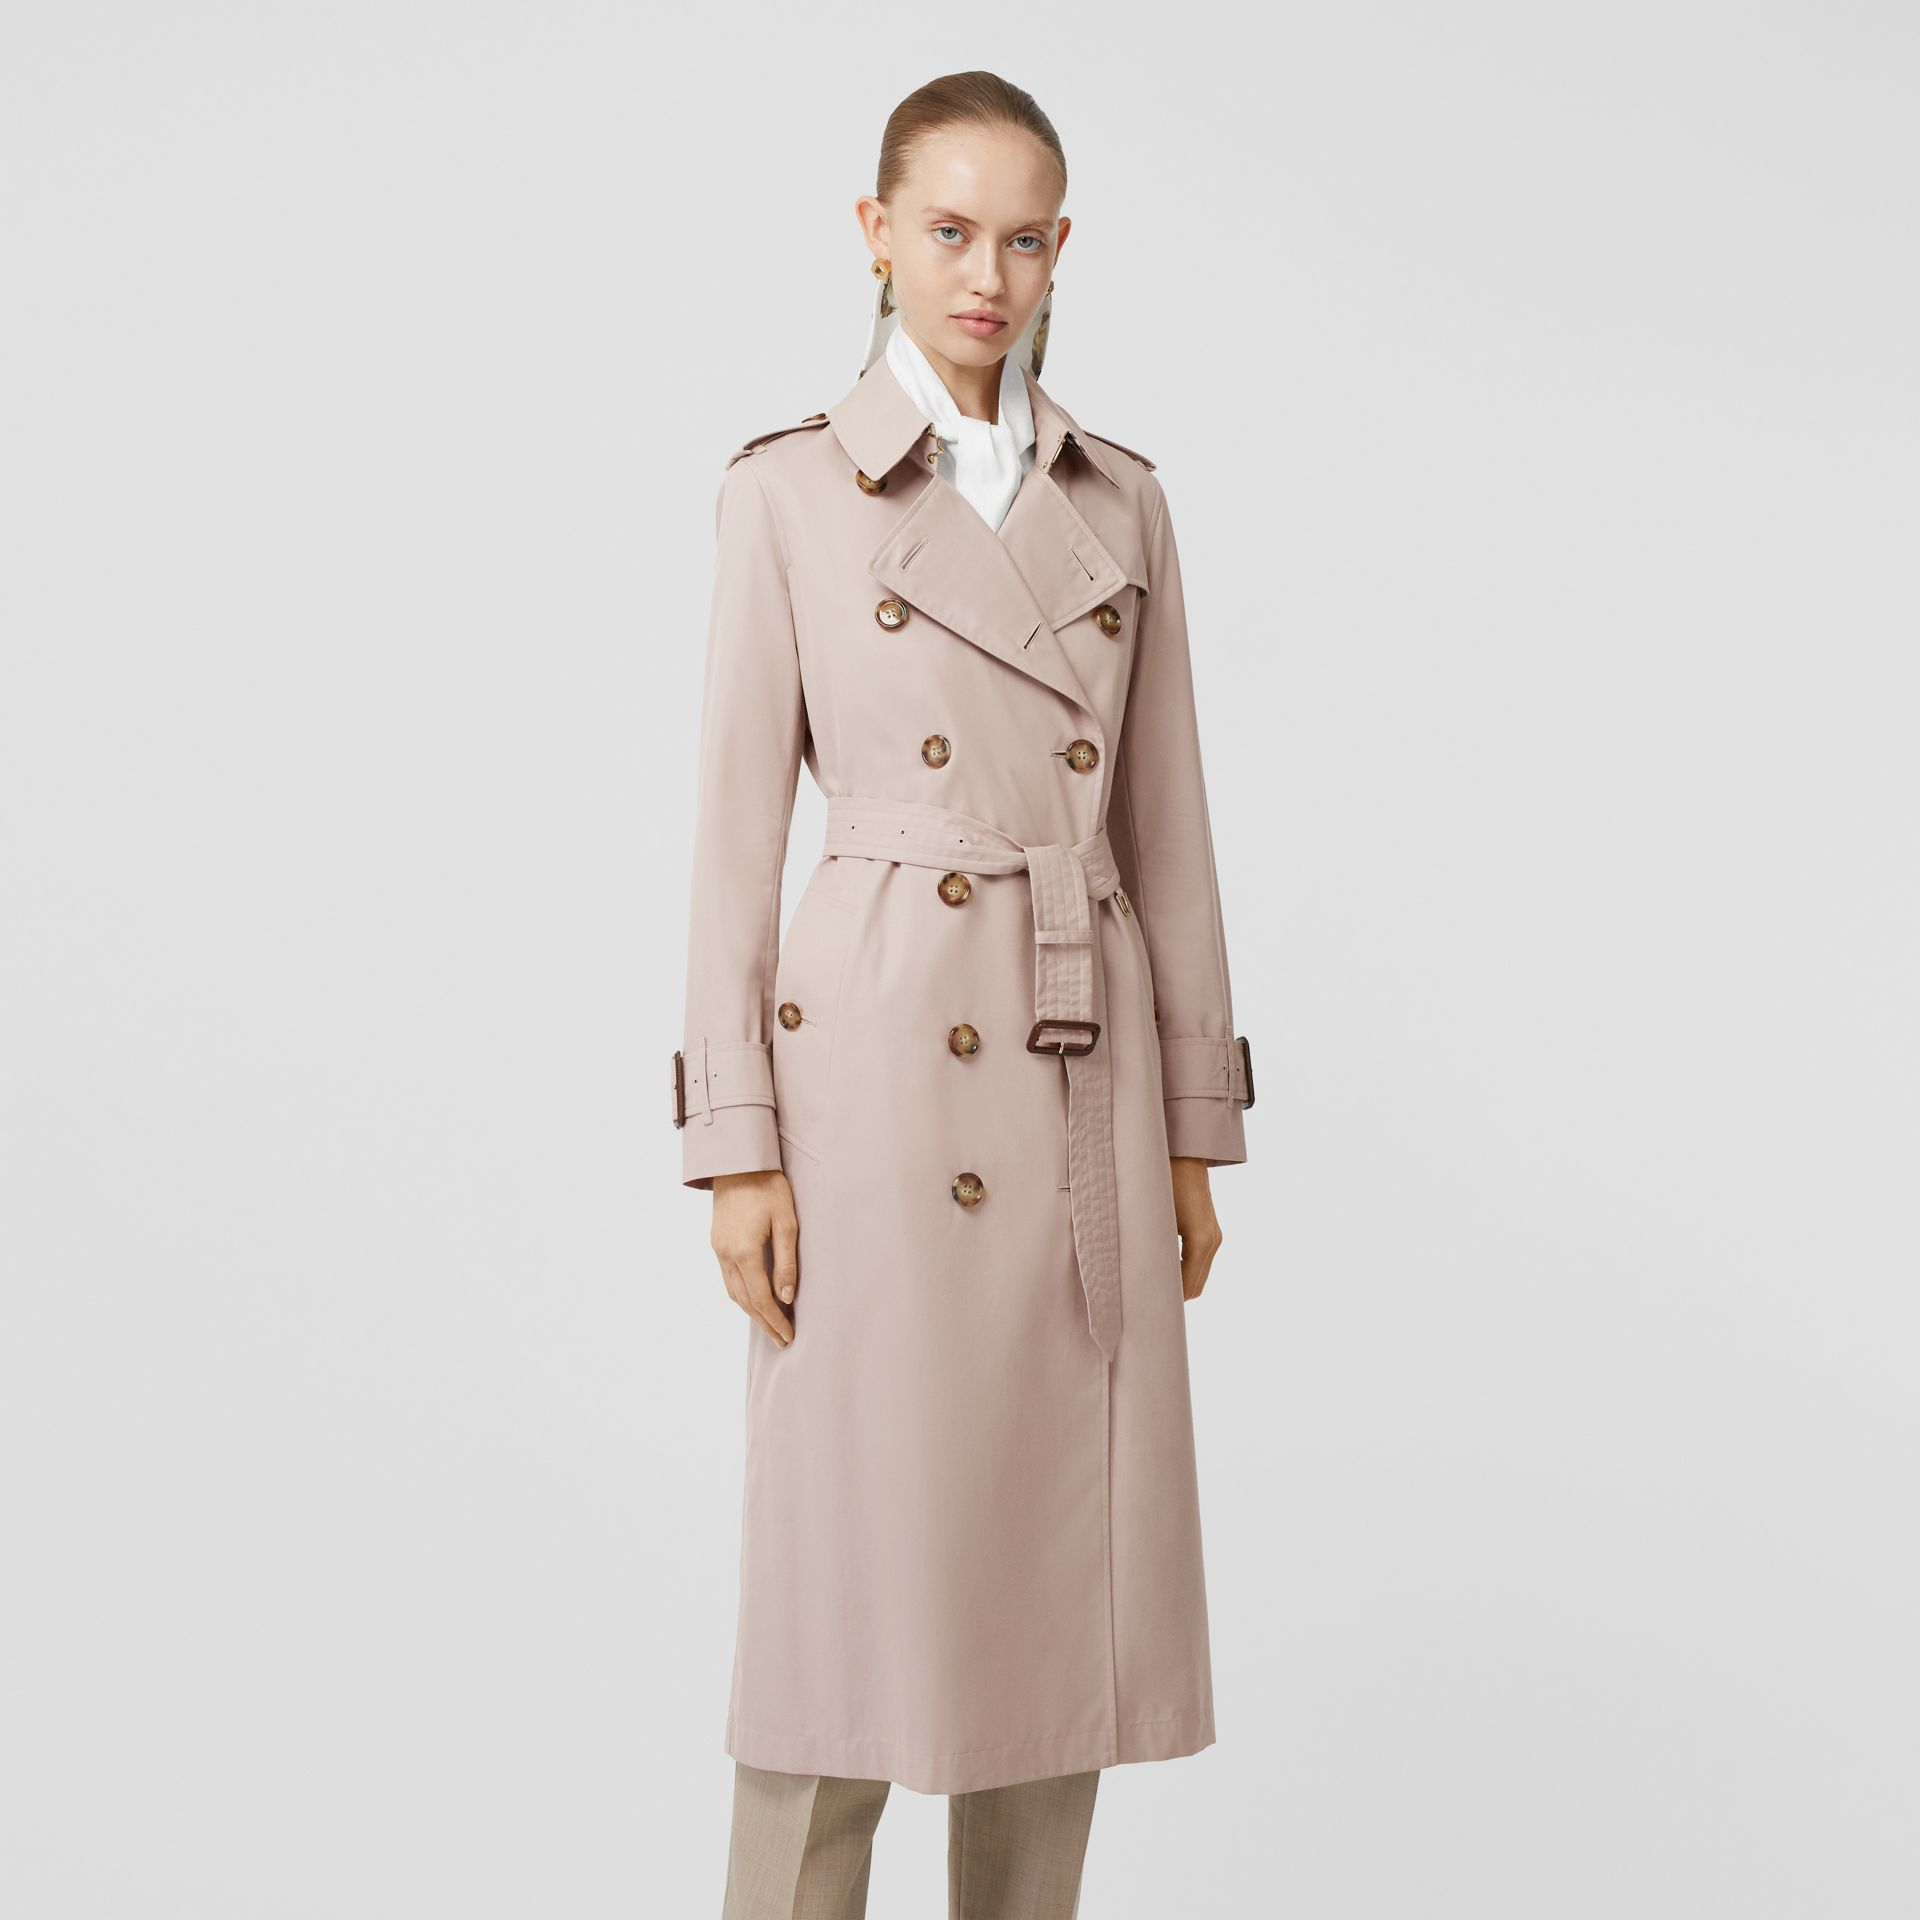 Cotton Gabardine Trench Coat in Pale Blush - Women | Burberry - gallery image 6